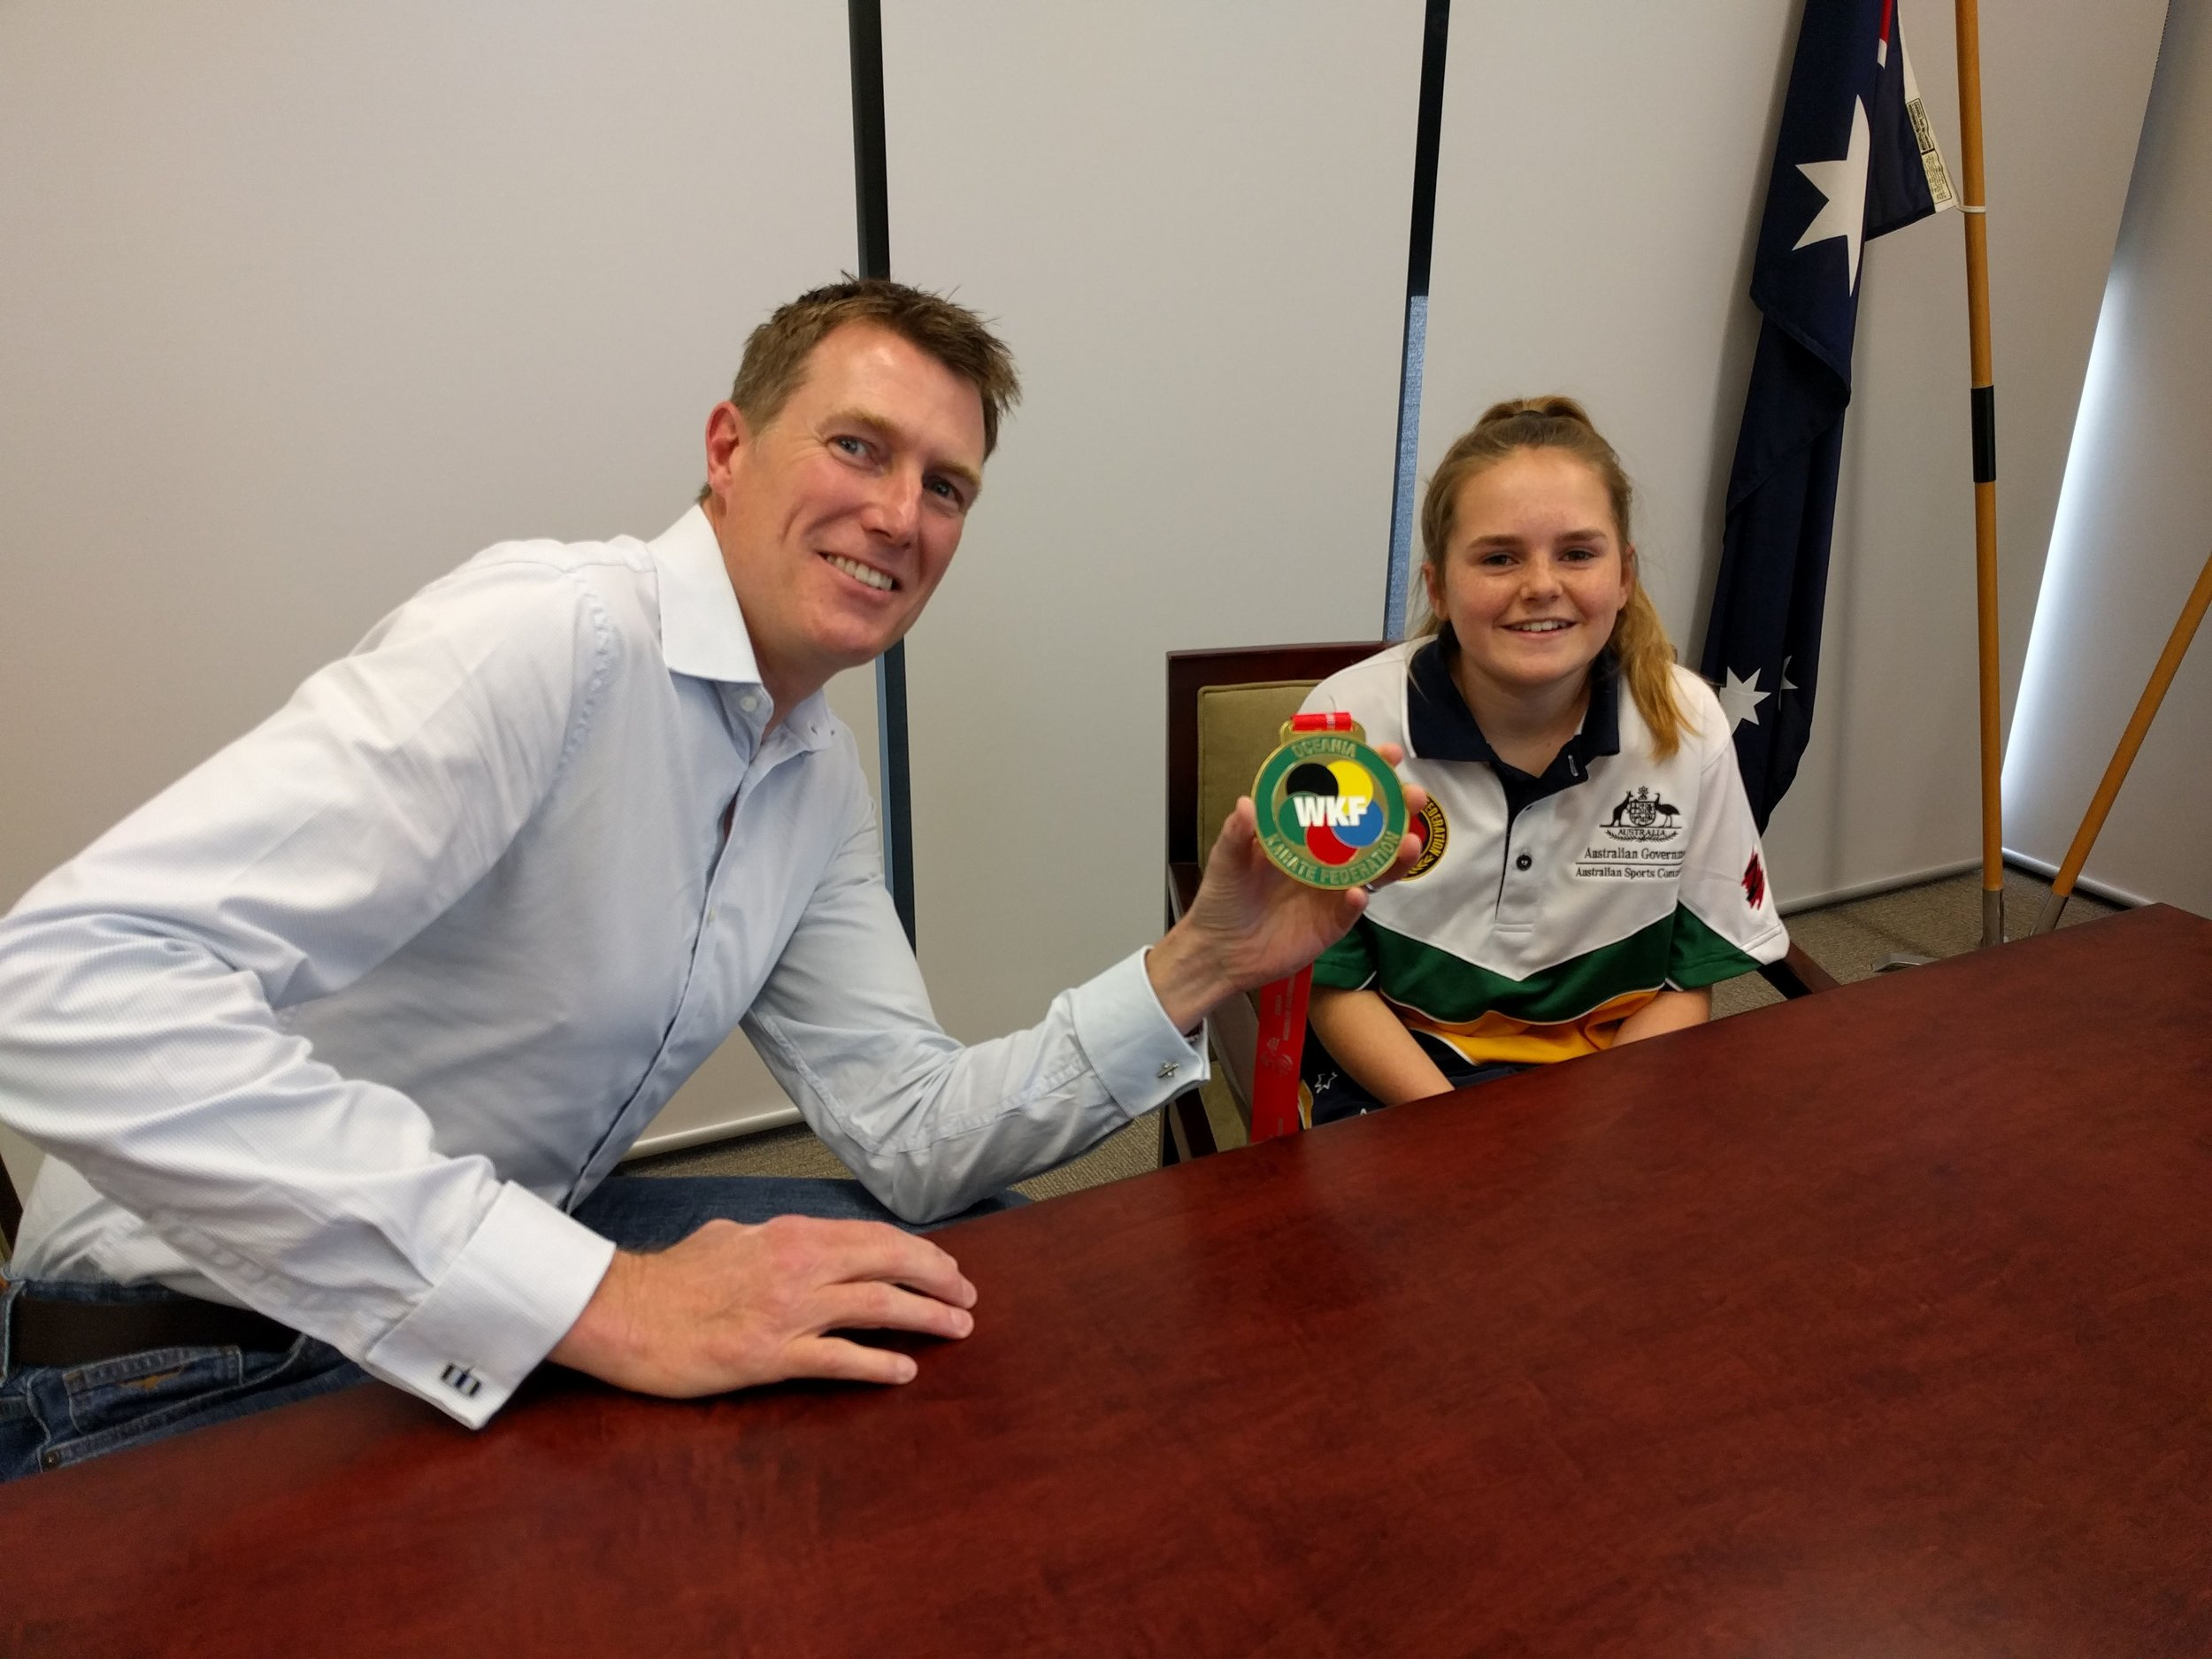 One of our Local Sporting Champions grant recipients, Jelena from Northam, recently competed and won gold at the 2016 Oceania Karate Championships in New Caledonia!